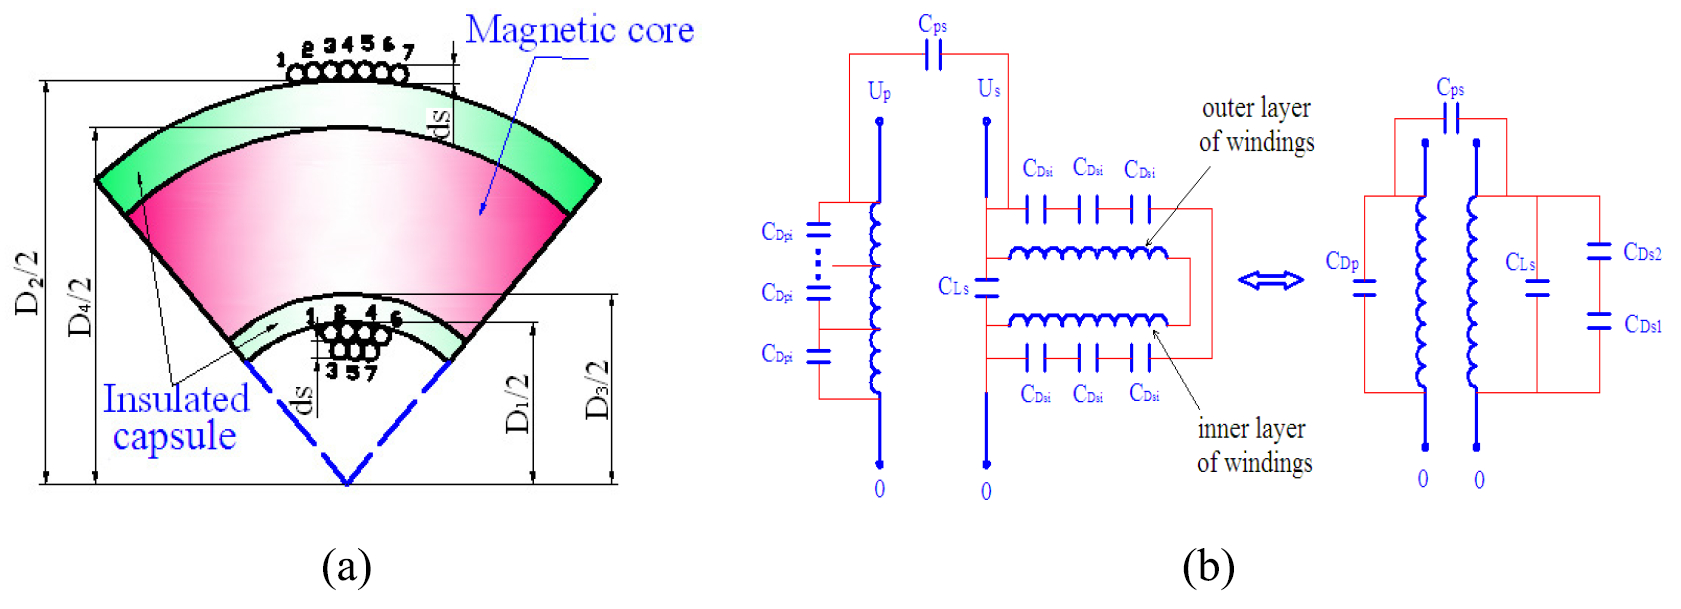 hight resolution of hybrid energy storage and applications based on high power pulse schematic of pulse transformer when the secondary circuit is equated